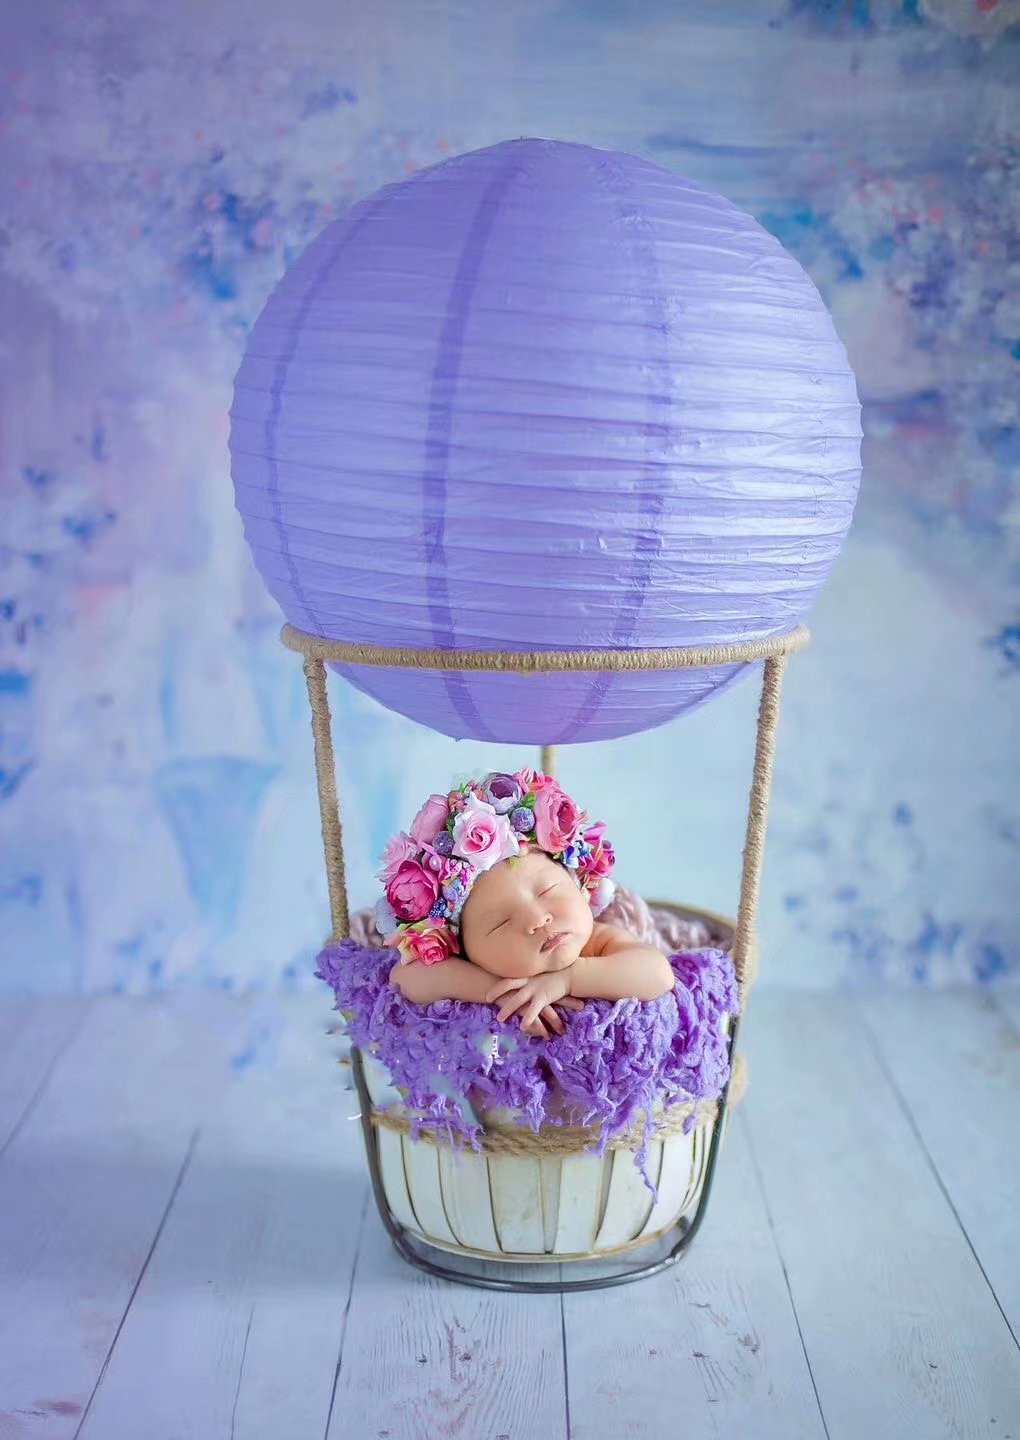 Creative Balloon Props For Newborn Photography To Decorate Cute Baby Studio Props